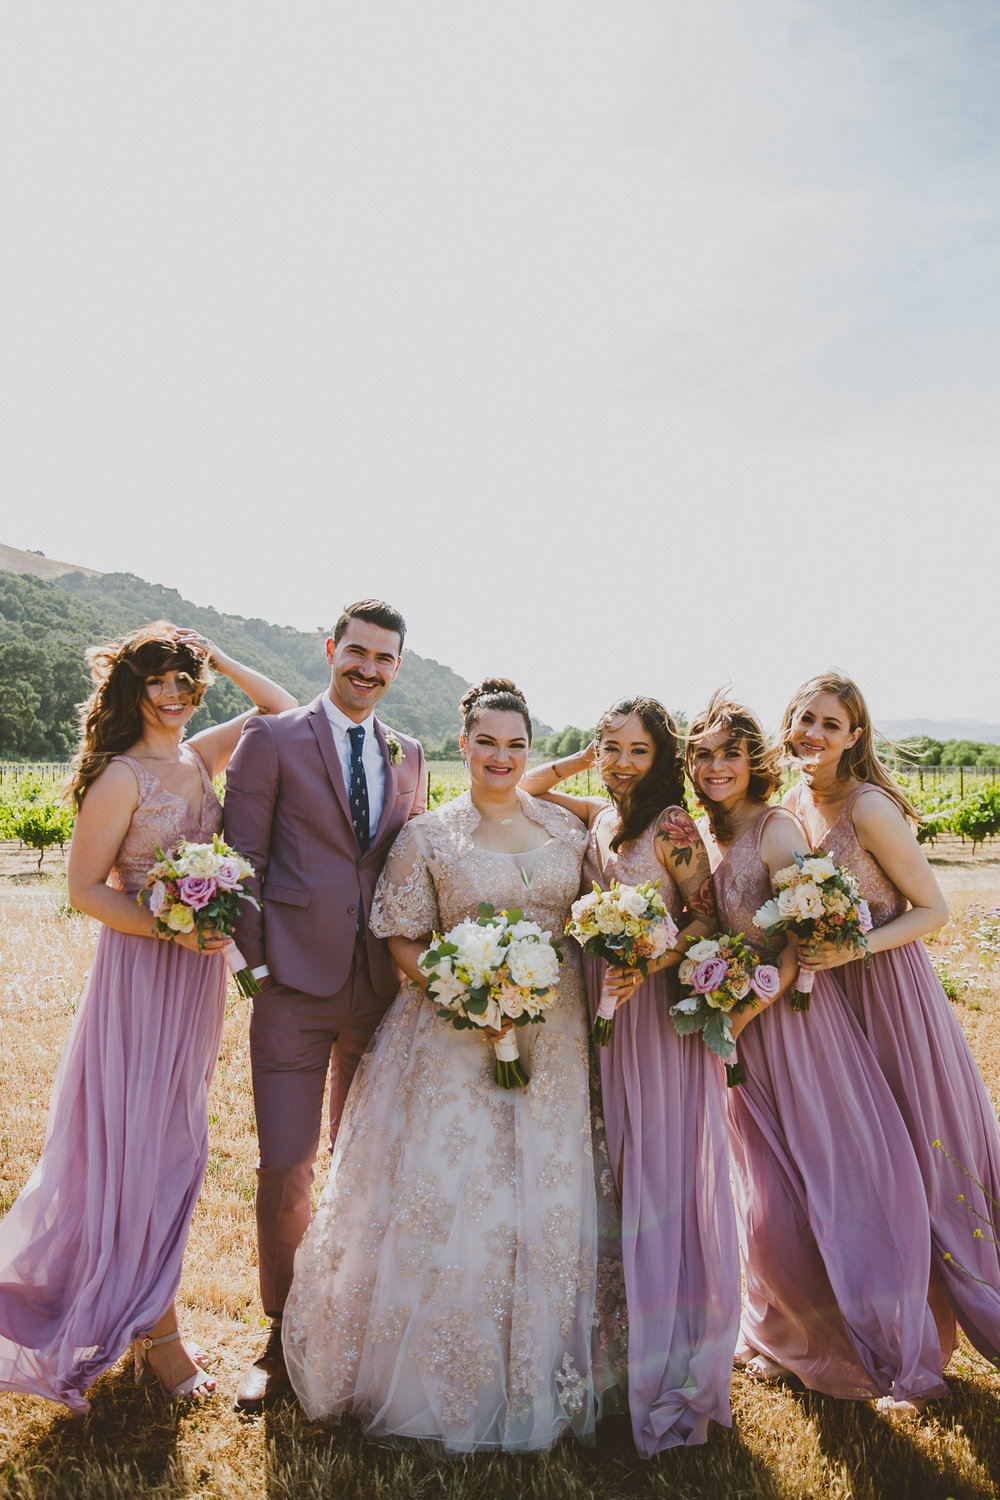 lydia-matt-lavender-oak-vineyard-kelley-raye-los-angeles-wedding-photographer-23.jpg